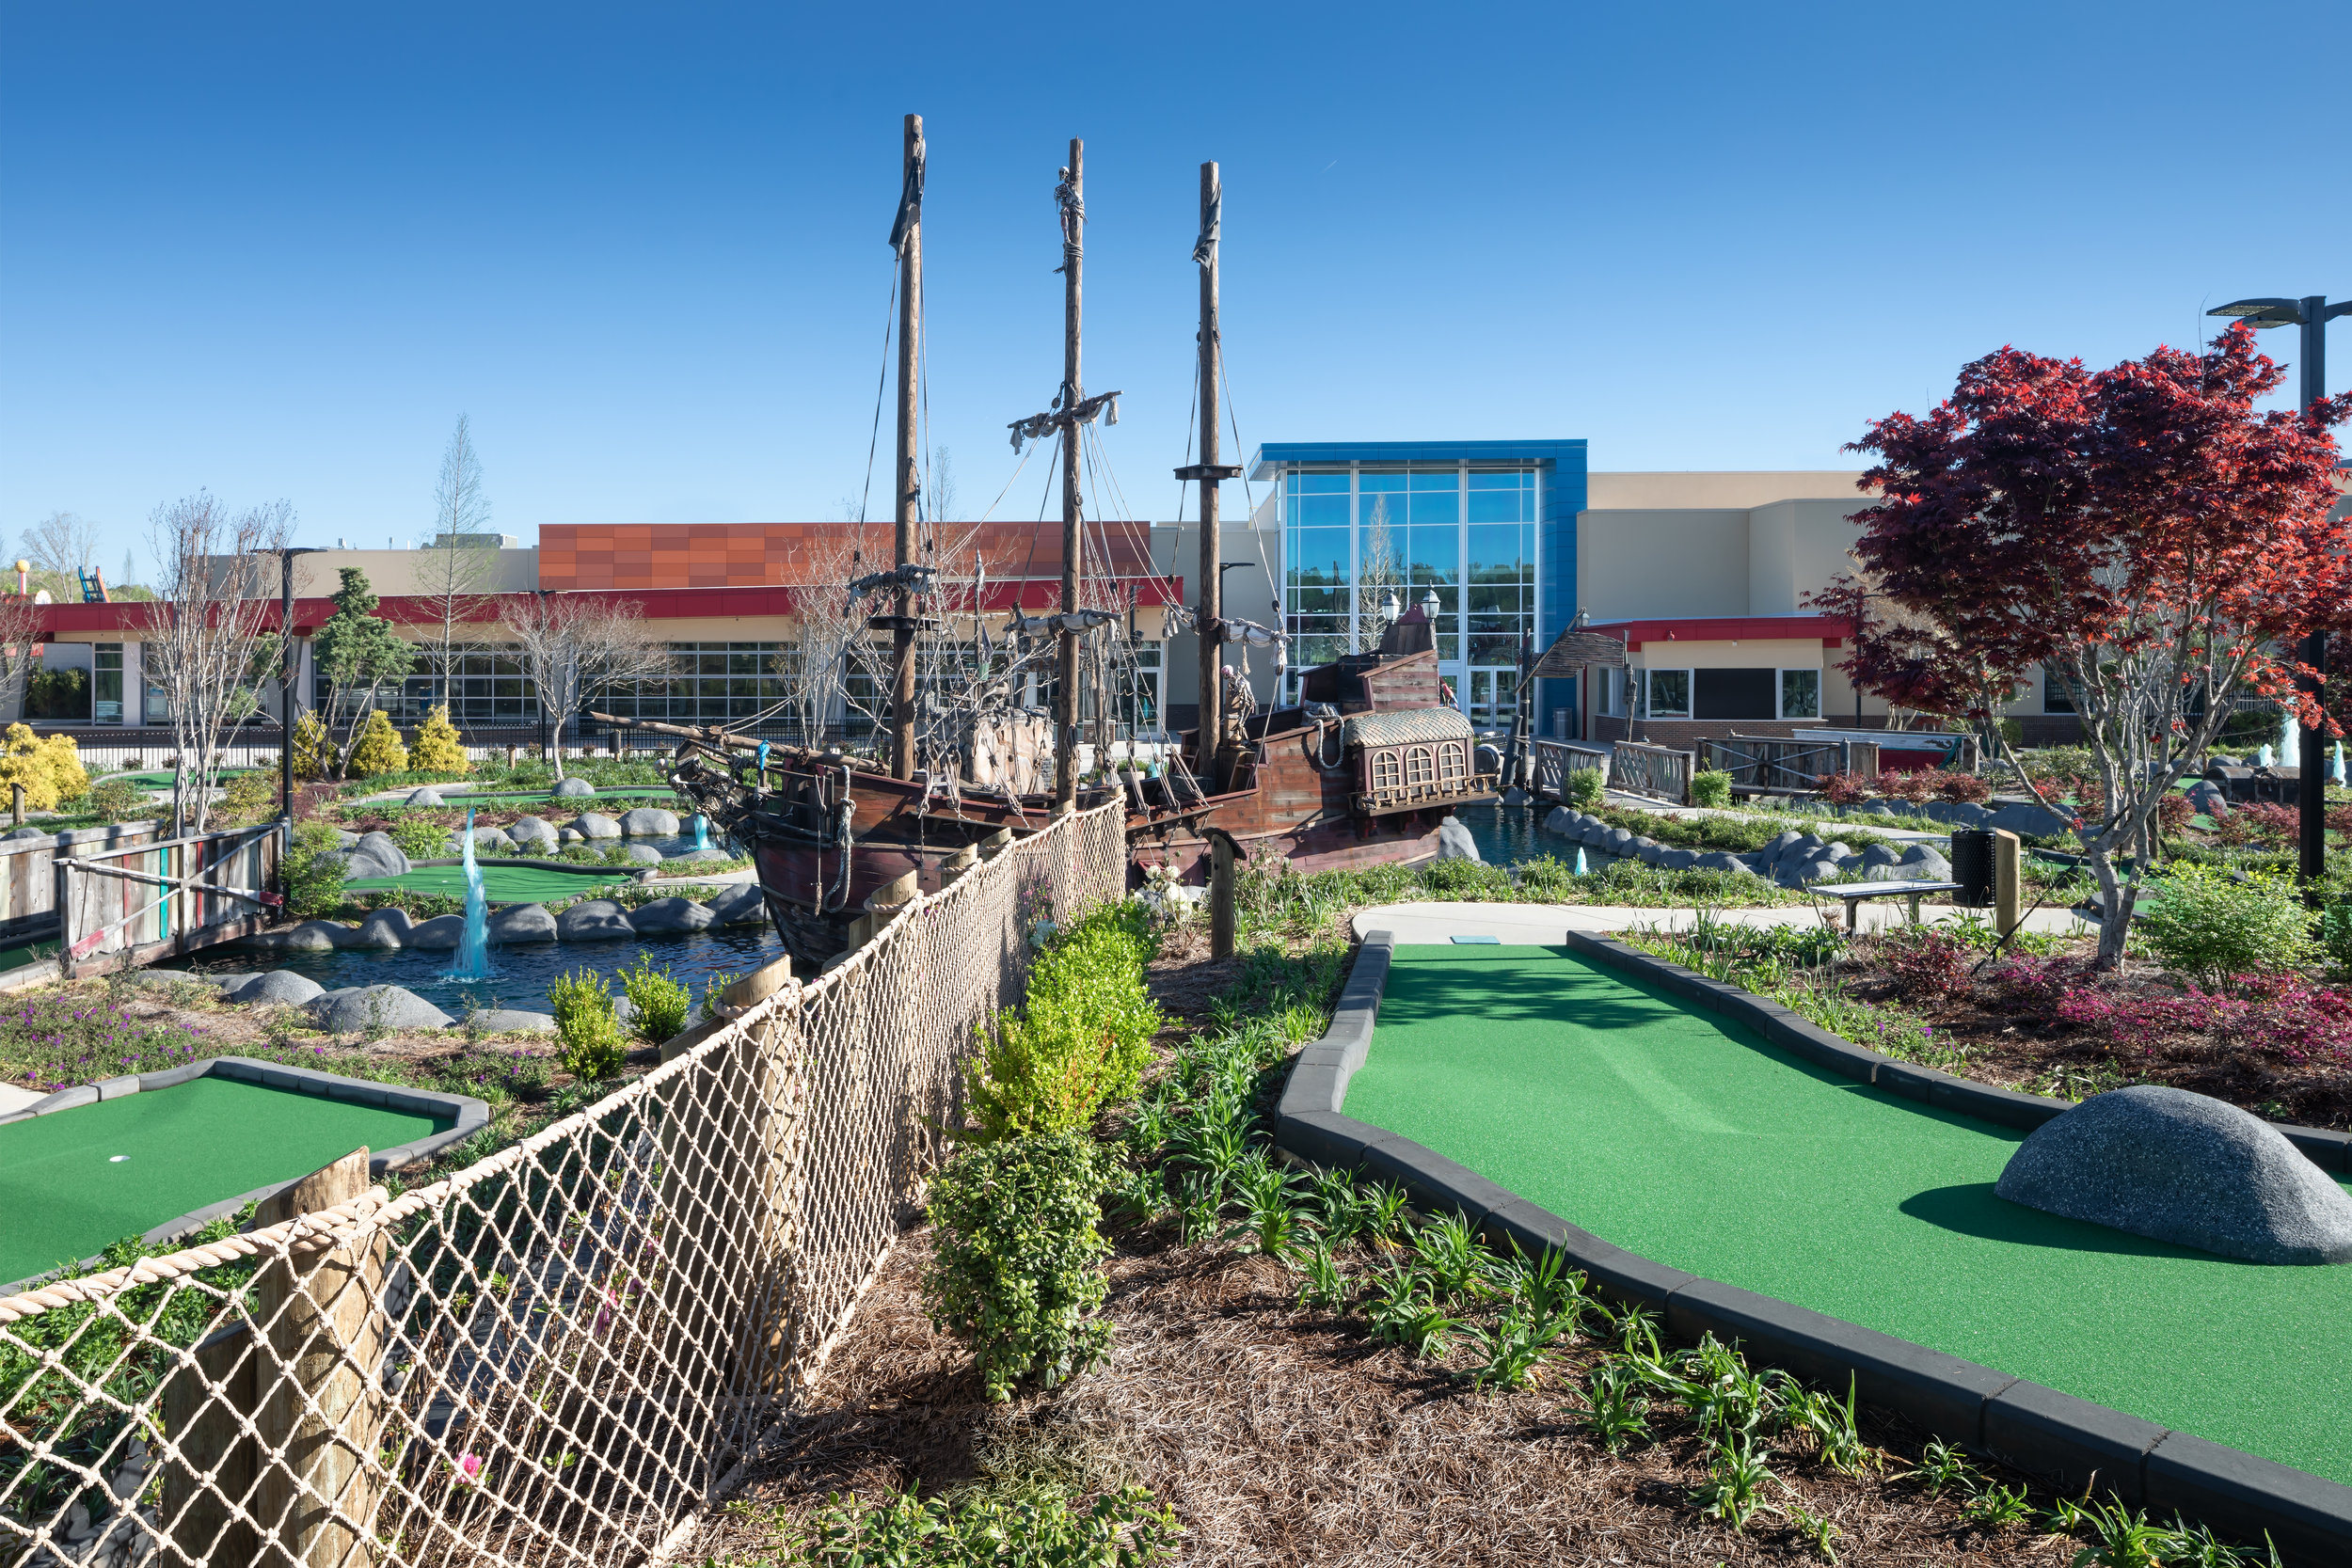 ADW-Entertainment-Frankie's-Fun-Park-Huntersville-NC-Exterior-Mini Golf 01.jpg